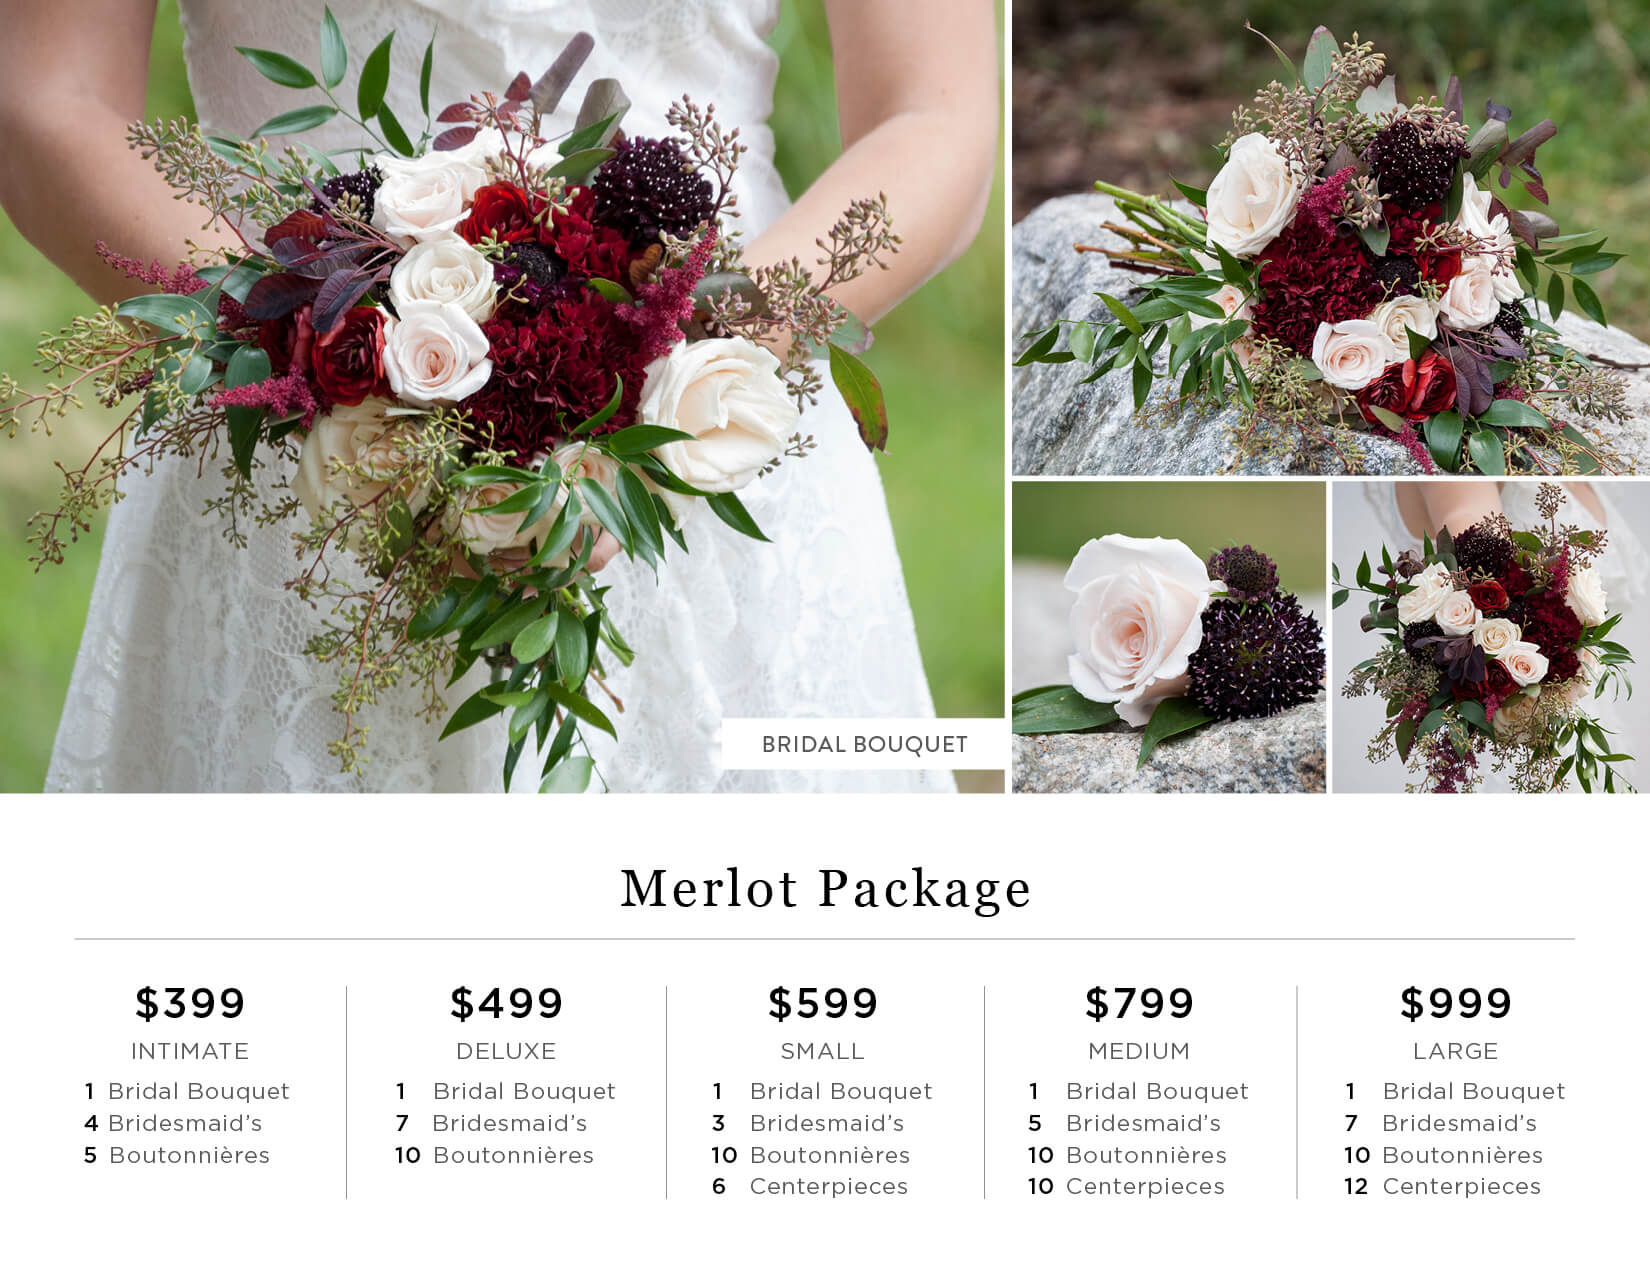 Diy wedding flowers catalog bridal bouquets seasonal year the diy wedding flowers catalog autumn bliss autumnblissproduct merlotpackage merlot flowers izmirmasajfo